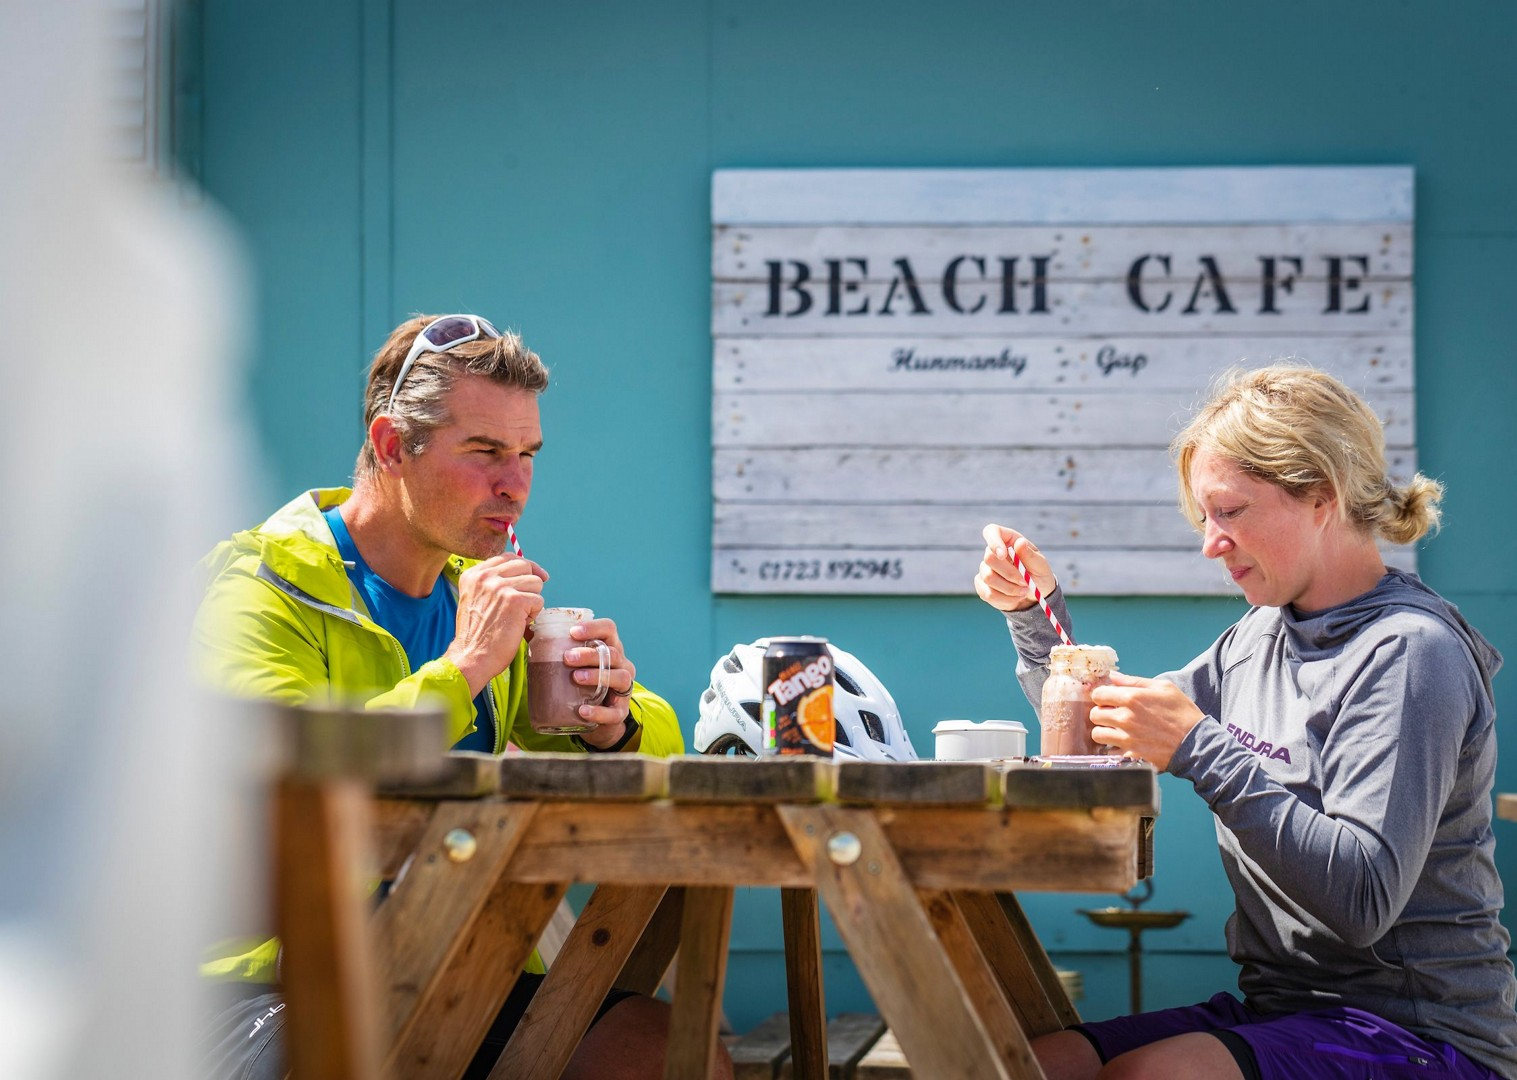 beach-cafe-bempton-yorkshire-cycling.jpg - NEW! UK - Yorkshire Wolds - Leisure Cycling